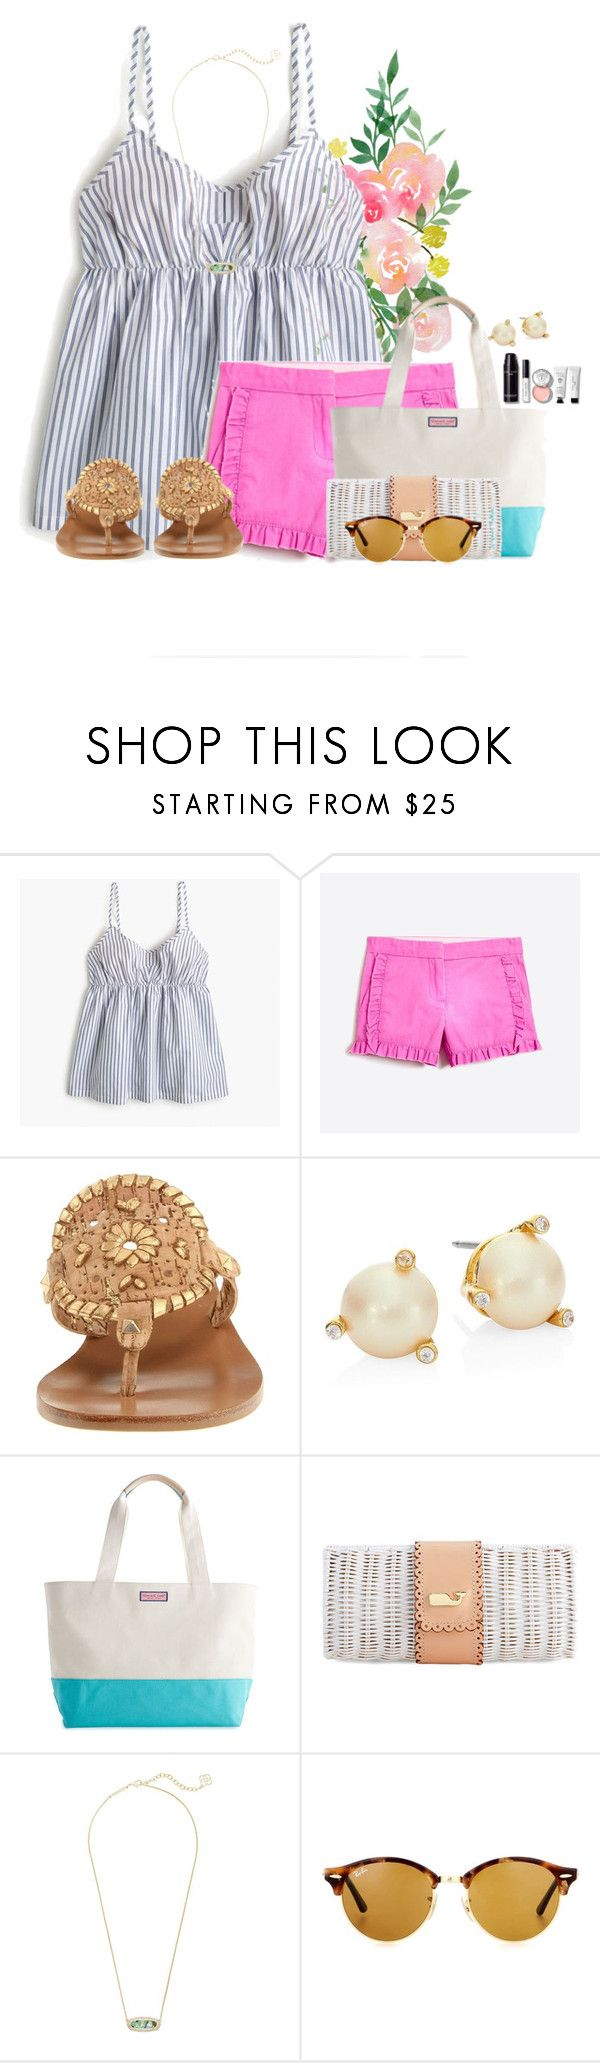 """~Packed with Prep~"" by flroasburn ❤ liked on Polyvore featuring J.Crew, Jack Rogers, Kate Spade, Kendra Scott, Ray-Ban and Bobbi Brown Cosmetics"